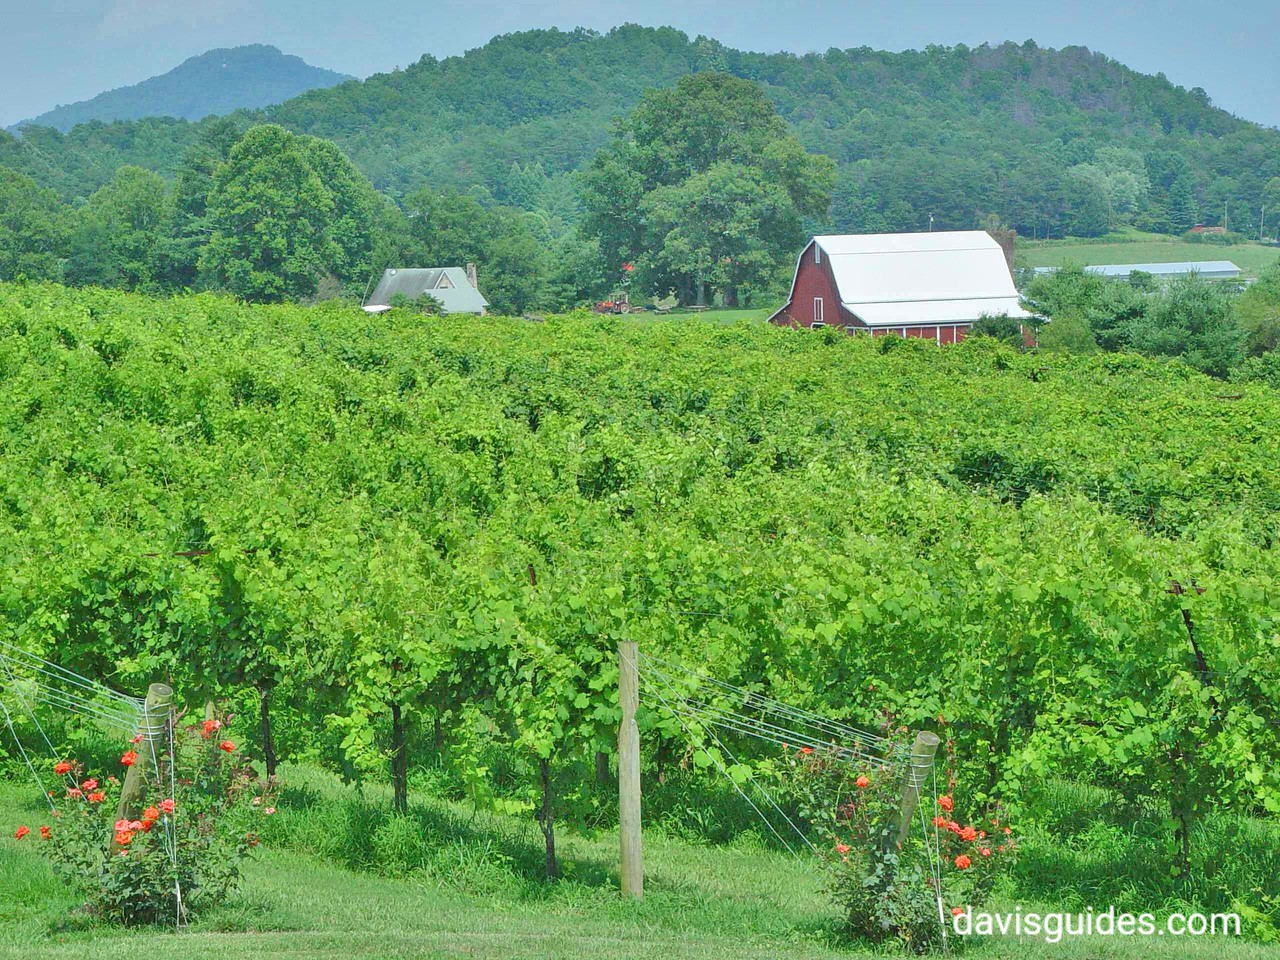 Wine grapes on the vine, North Georgia mountains